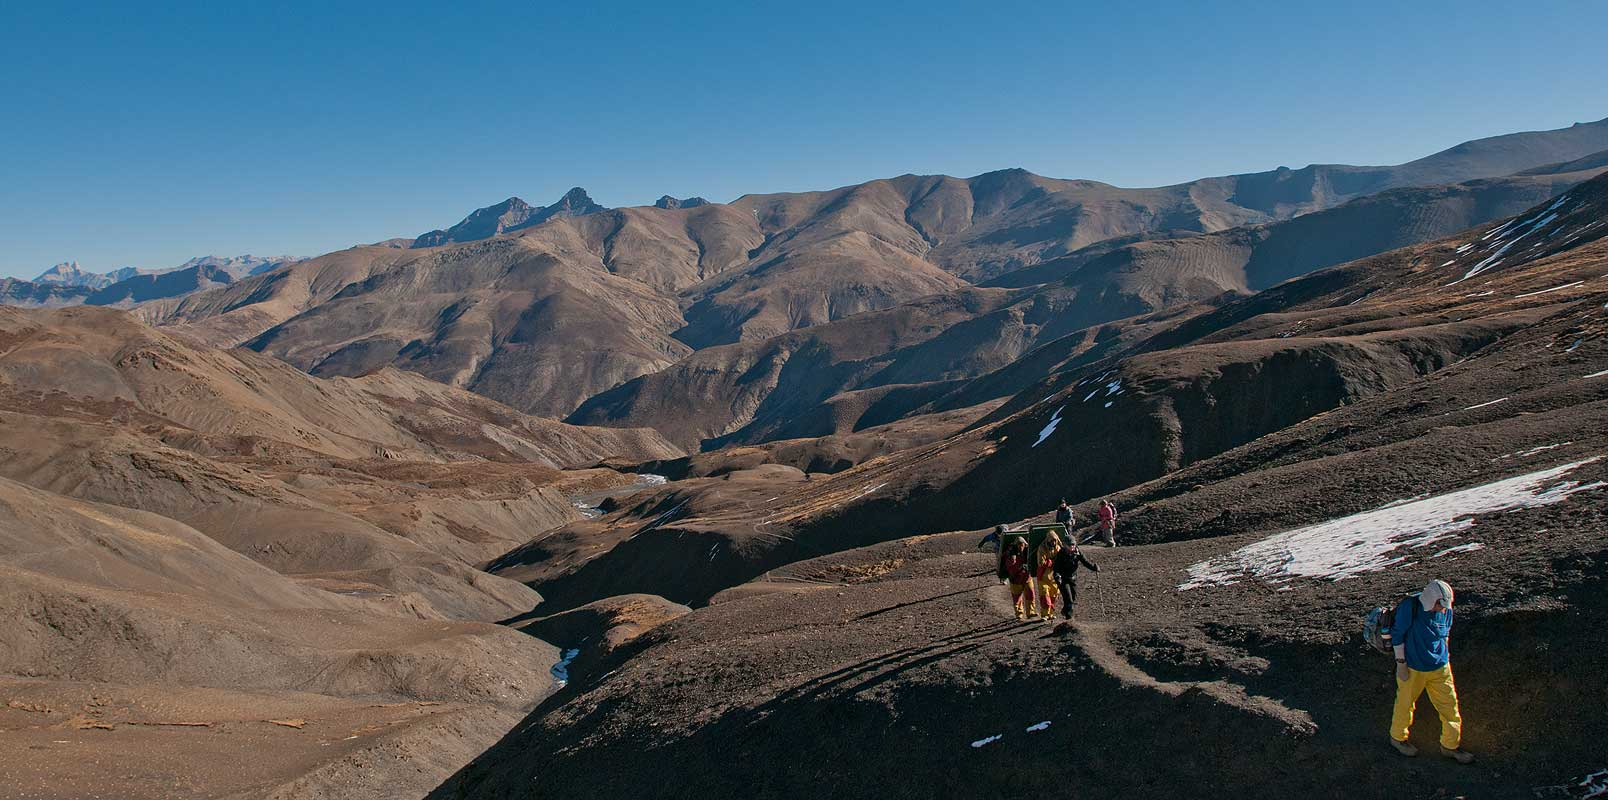 Trekkers approaching the crest of this high pass between Saldang and Dho Tarap